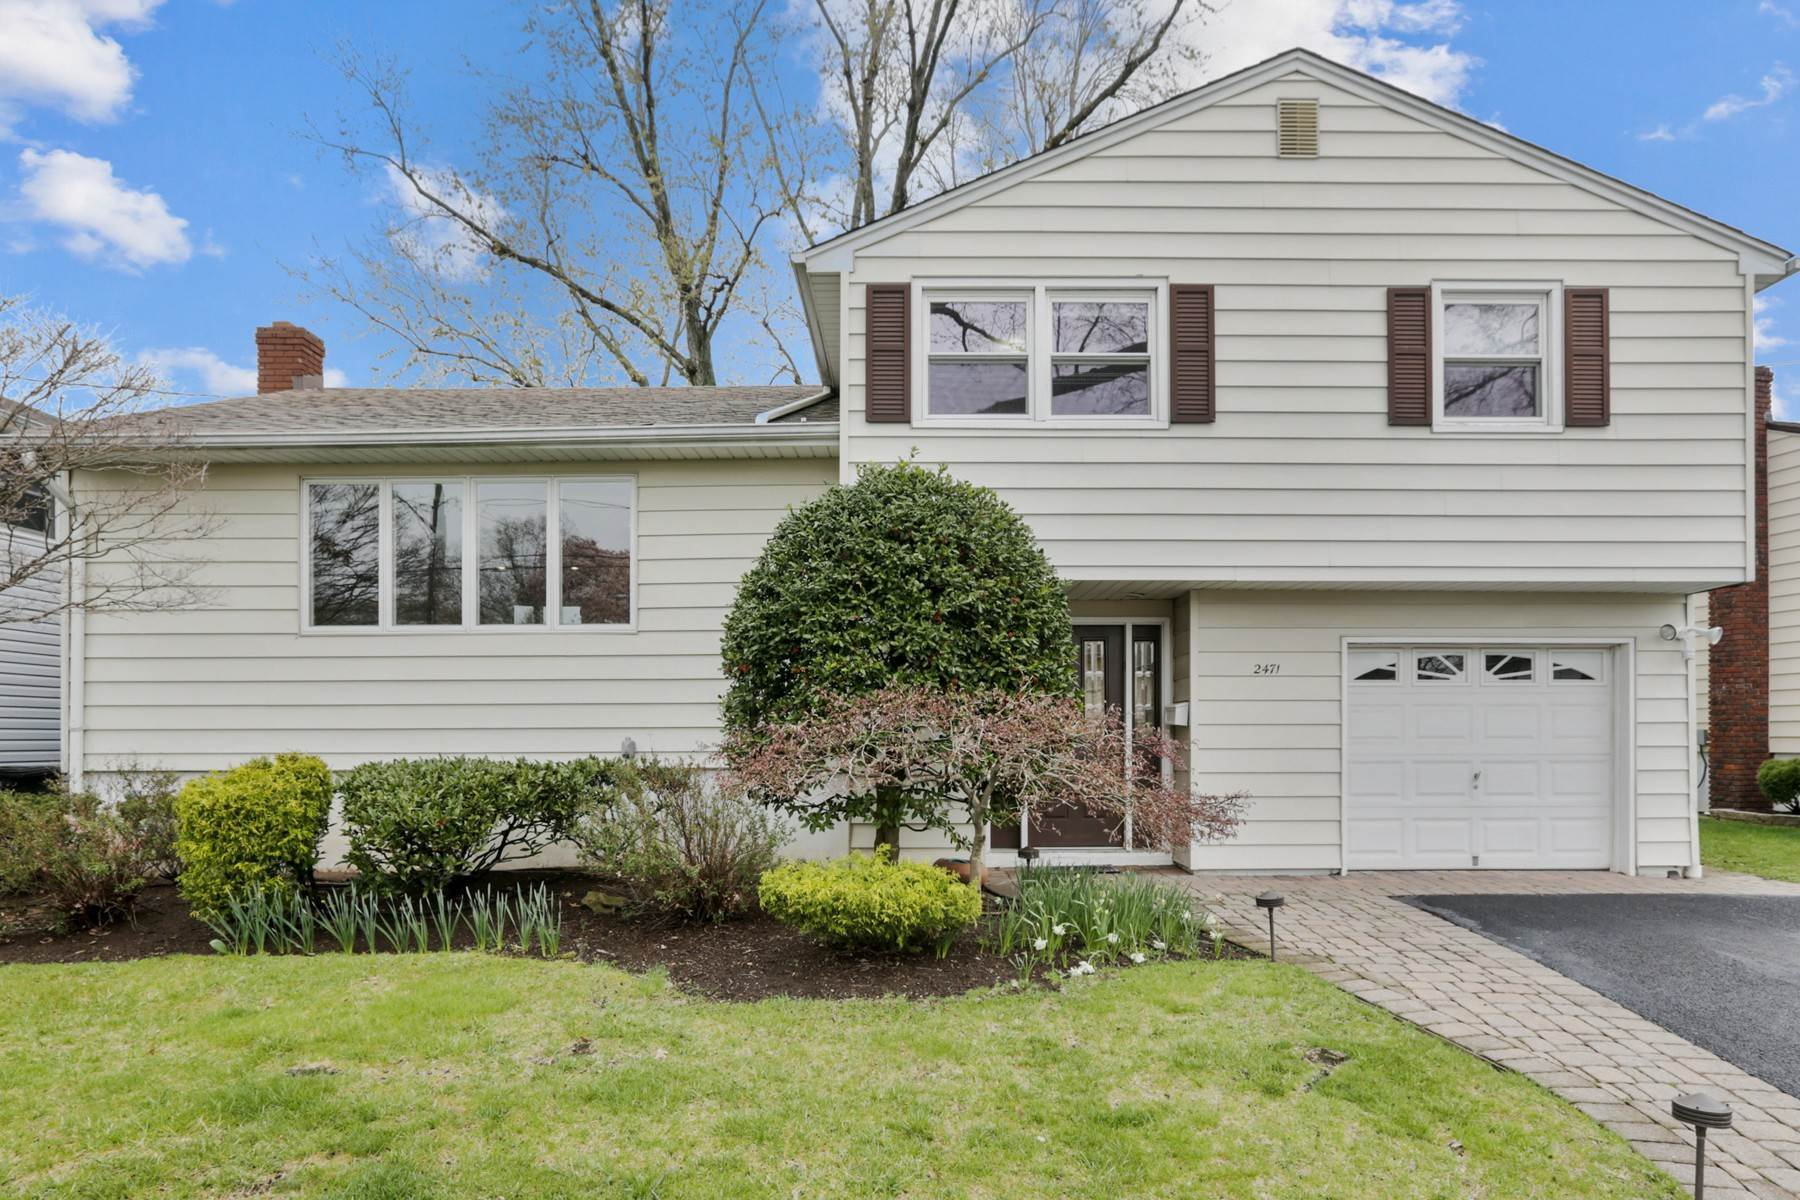 Single Family Homes for Sale at Sun Filled Three Bedroom Split Level 2471 Terrill Road Union, New Jersey 07083 United States